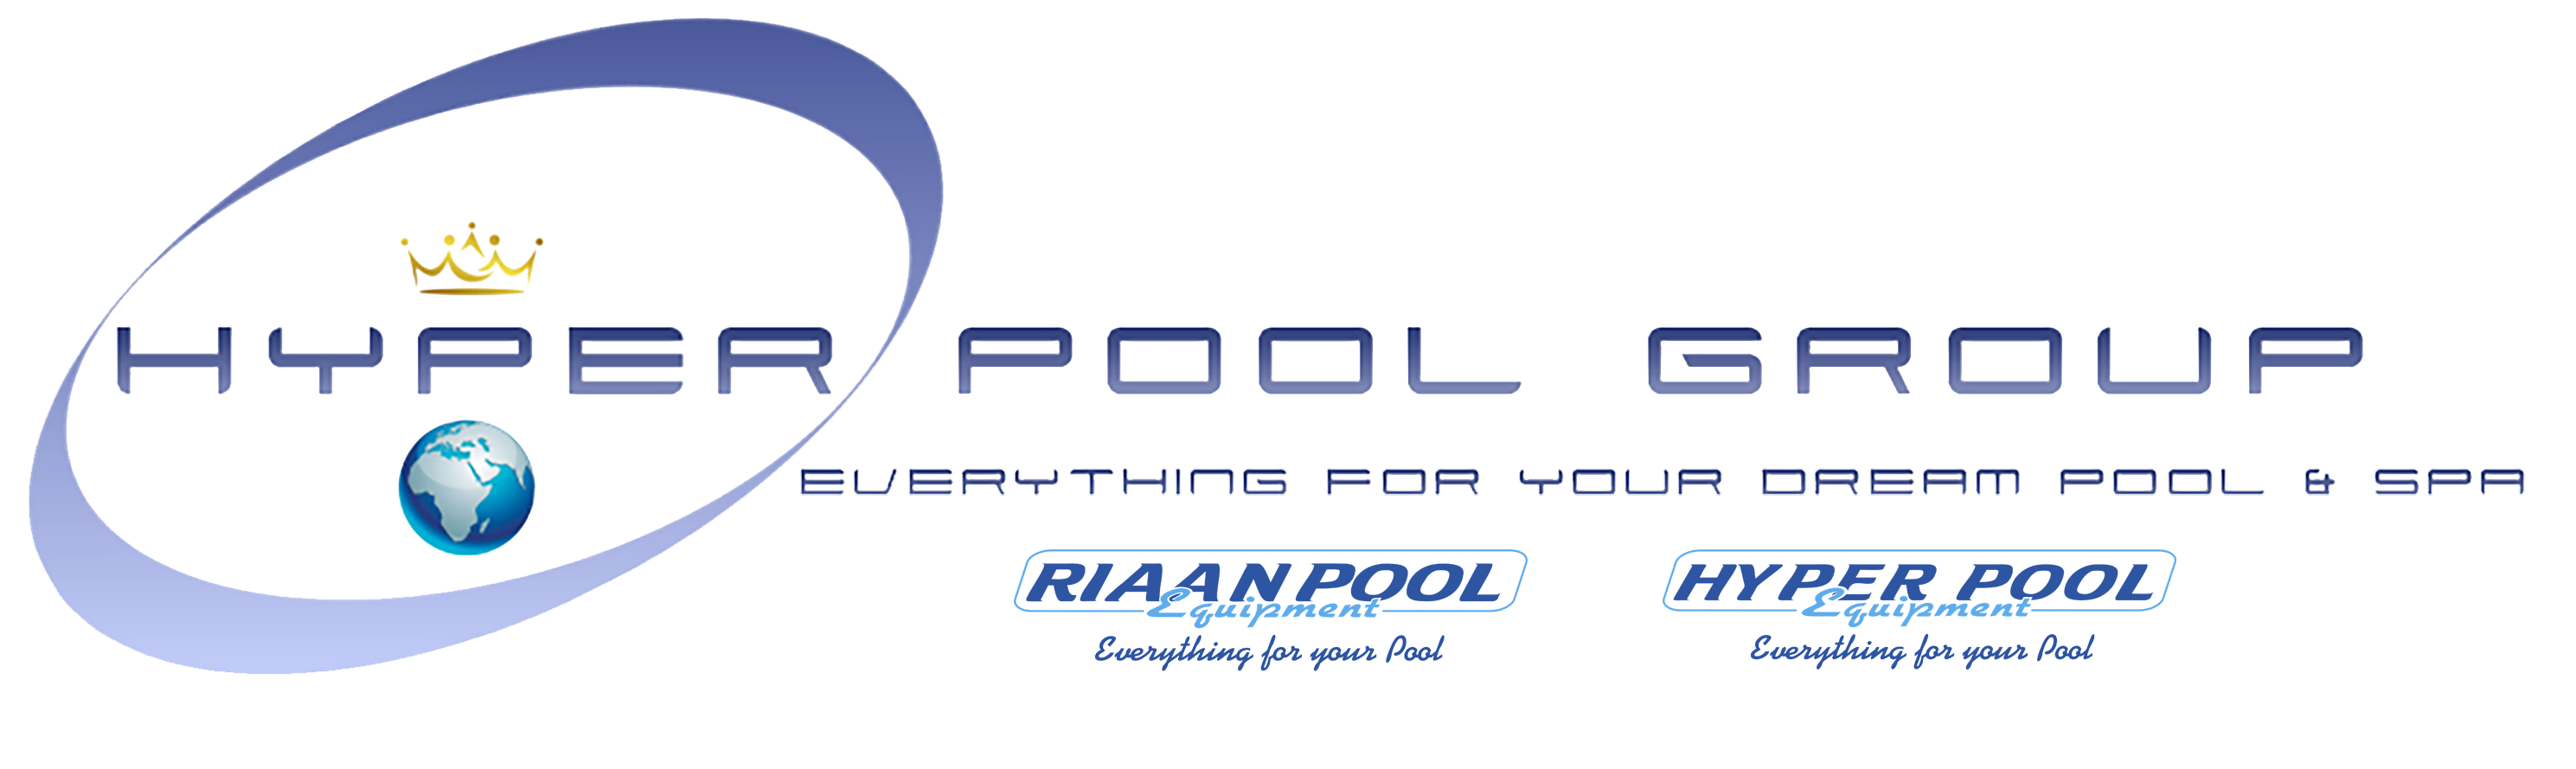 Hyper Pool Group